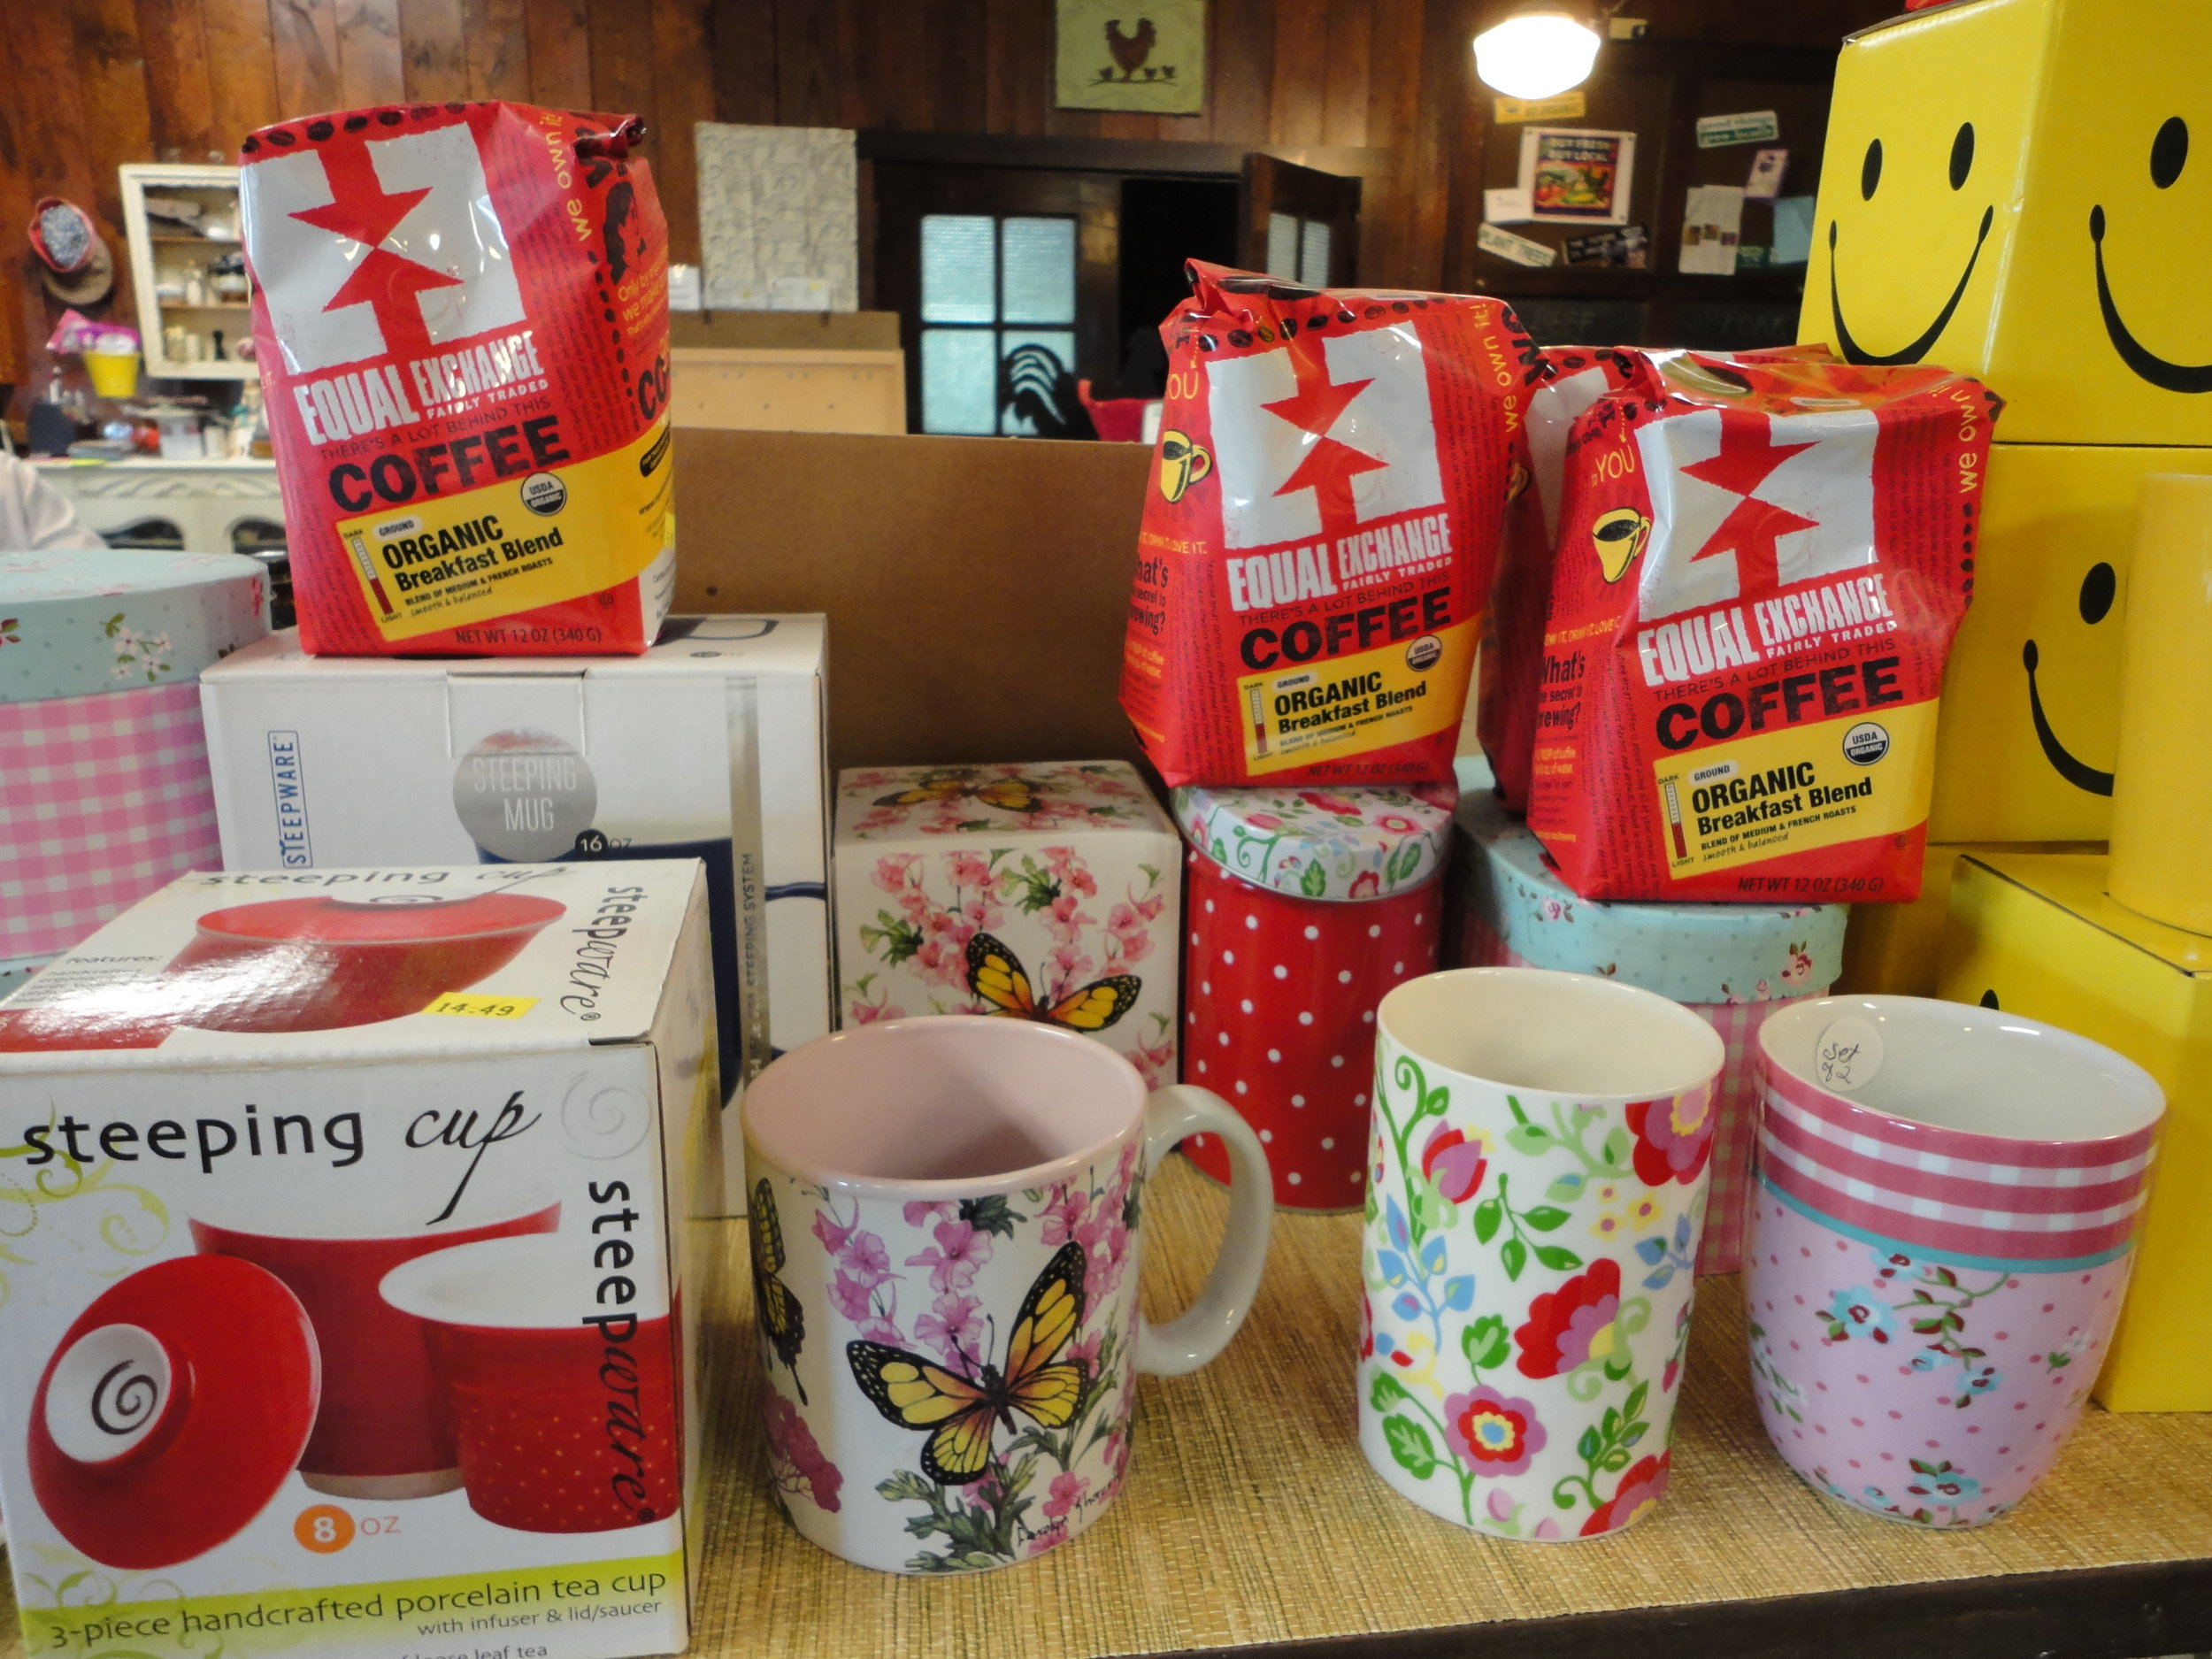 We carry premium specialty coffees and teas and accessories! - We carry whole bean and ground coffees, loose leaf and bagged teas